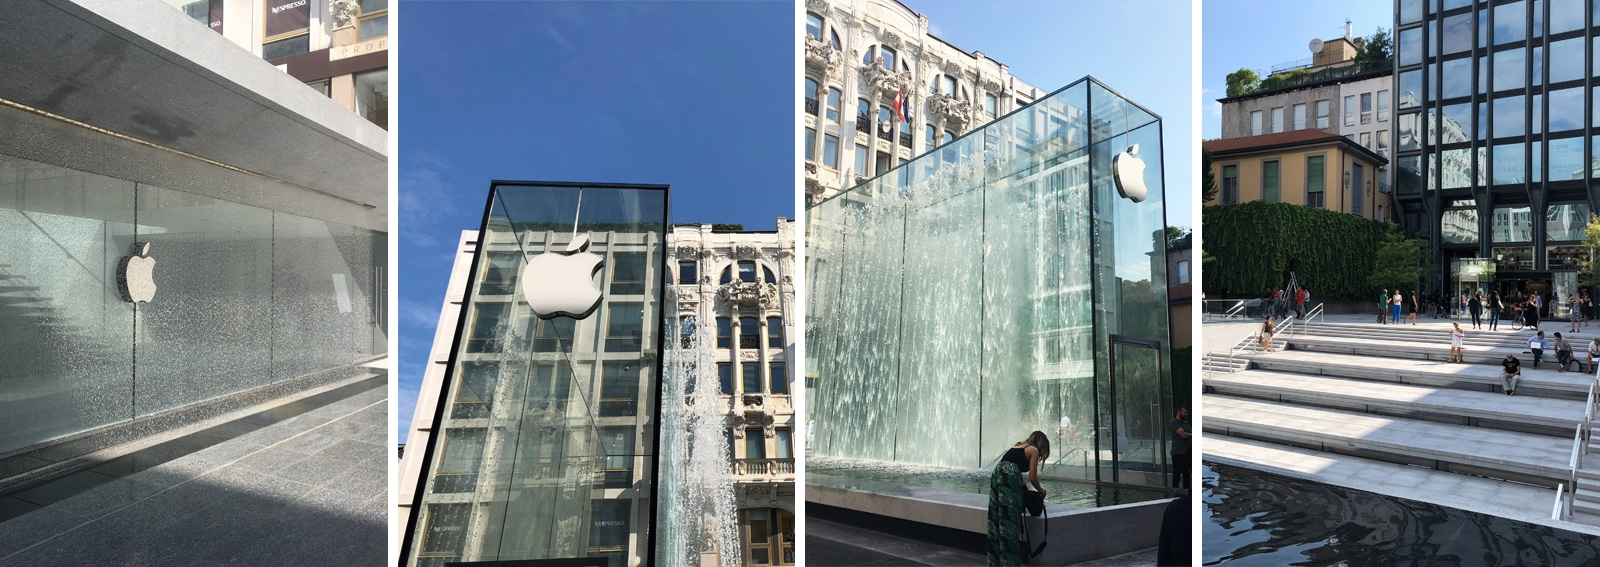 cover-apple-store-piazza-liberty-milano